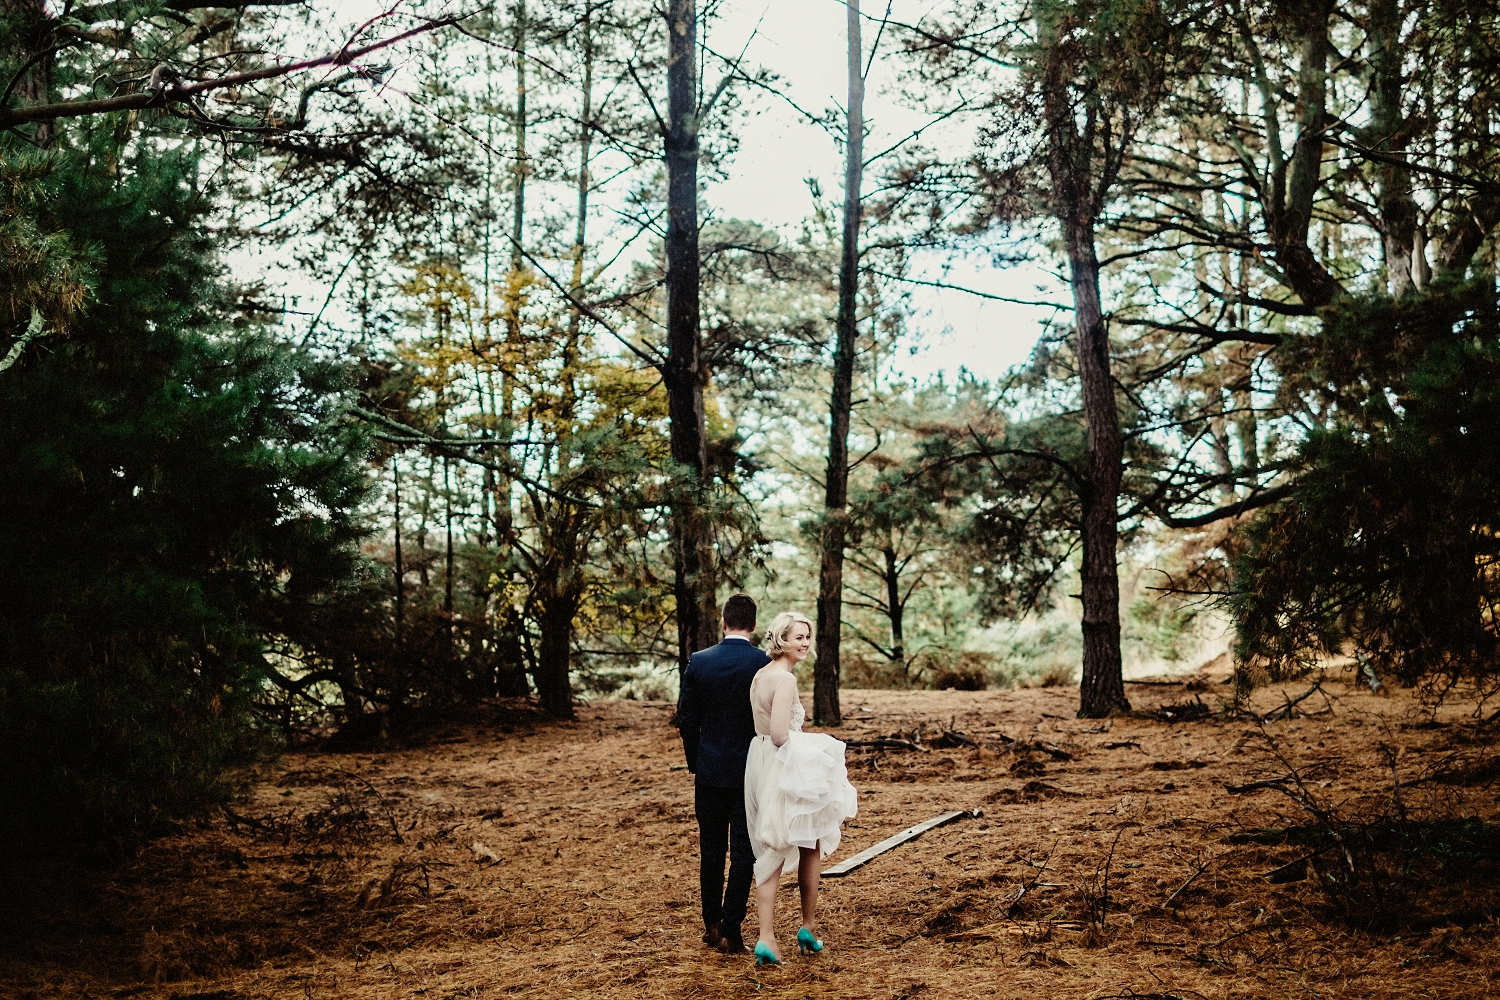 Squarespace_Wedding_Folio-LR-068AE.jpg